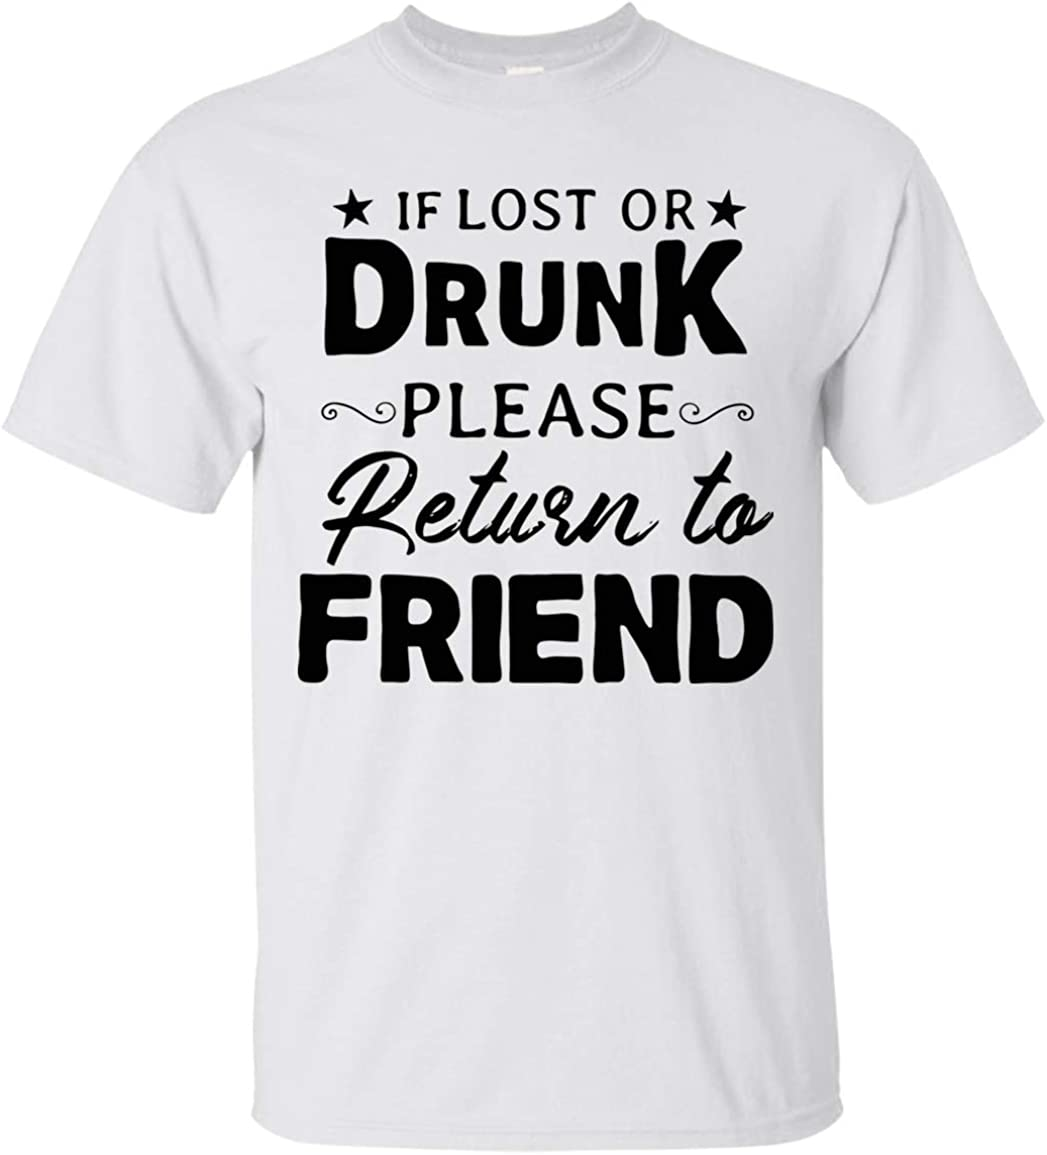 GoldMarkSeller If Lost or Drunk Please Return to Friend t-Shirt